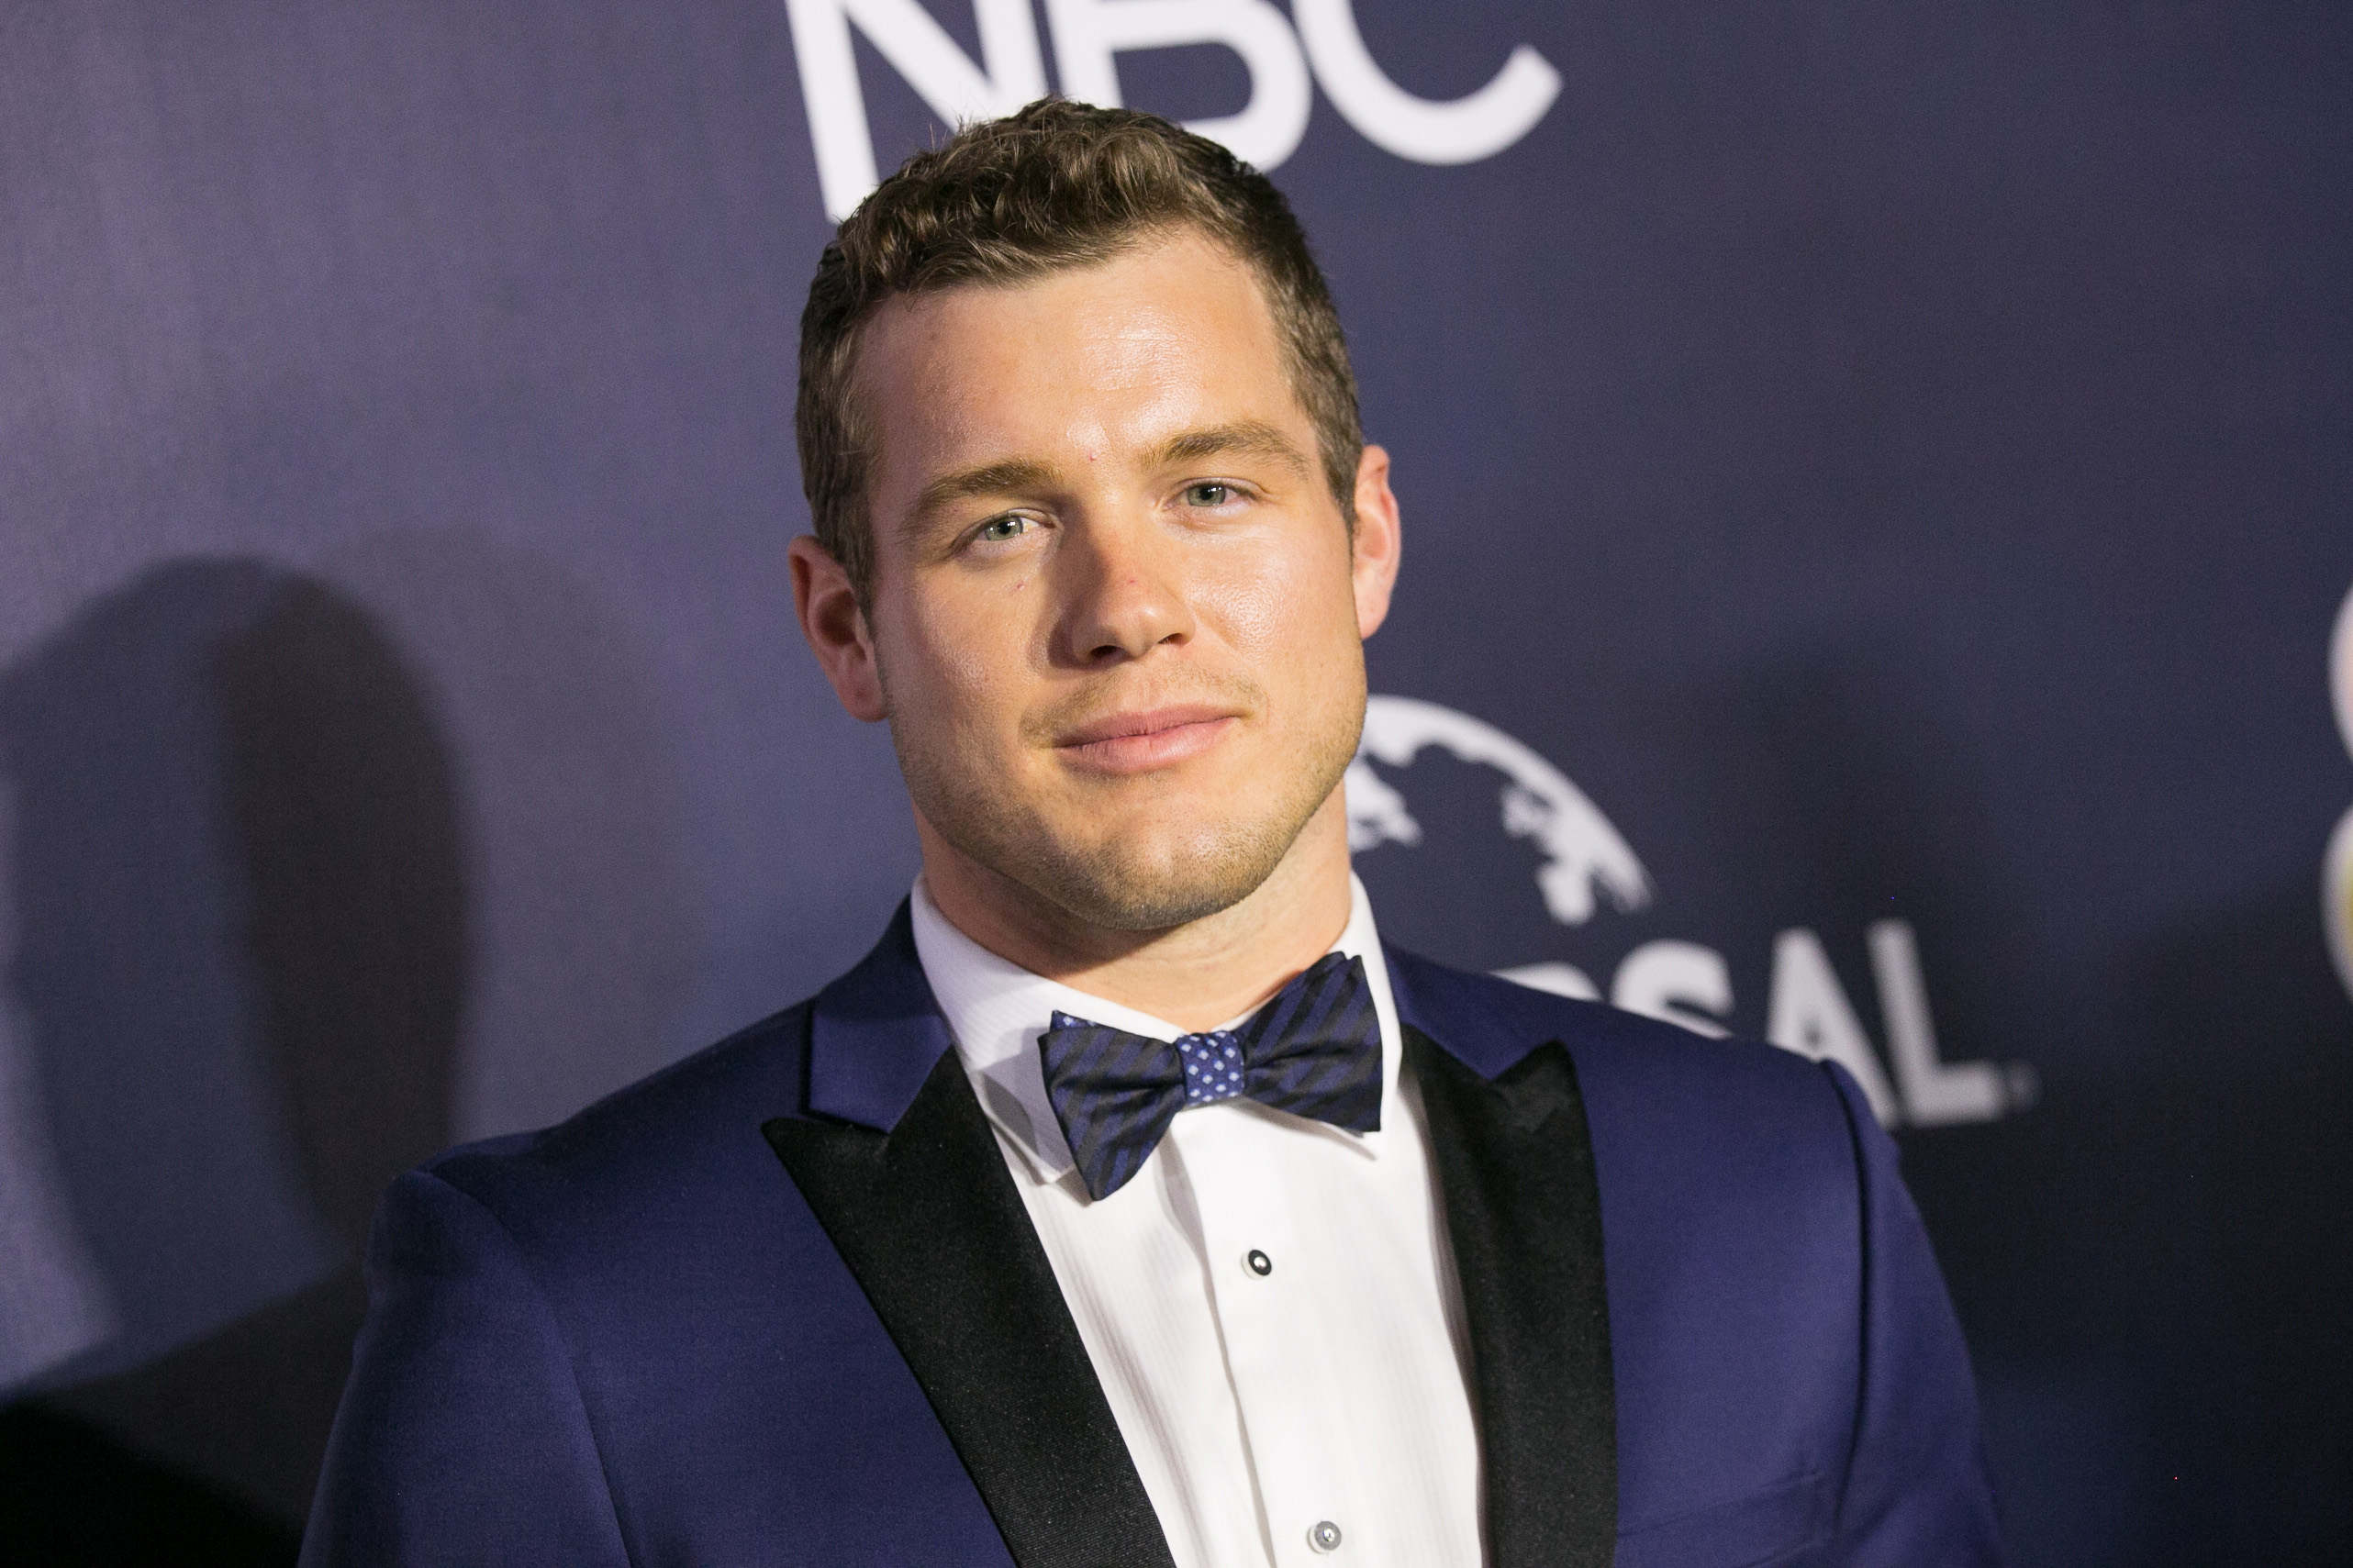 Everything you need to know about Colton Underwood: The next Bachelor